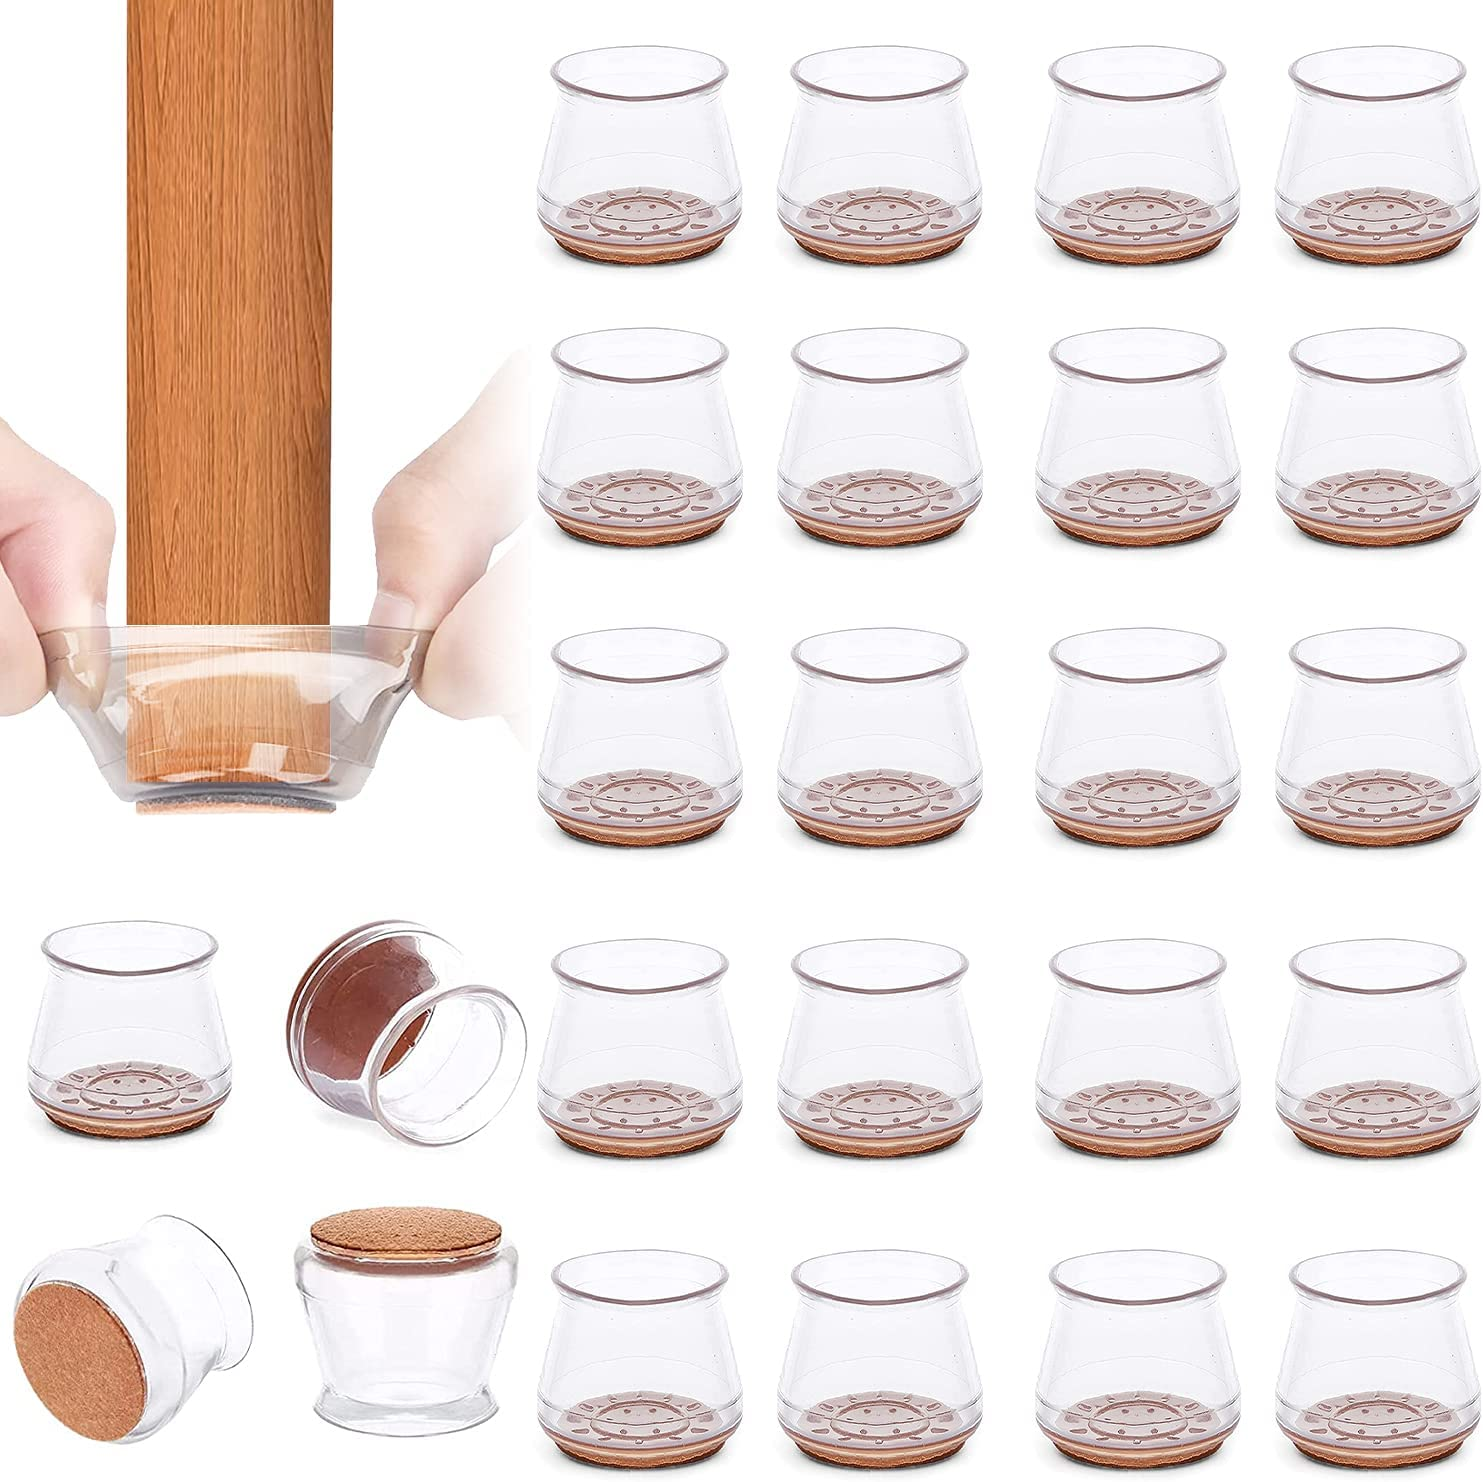 Upgraded Silicone Chair Leg Floor Protectors, 24Pcs Transparent Chair Leg Caps Furniture Foot Protector Pads with Soft Felt Bottom to Prevent Scratches & Noise-Free Moving Table Feet Covers (Large)